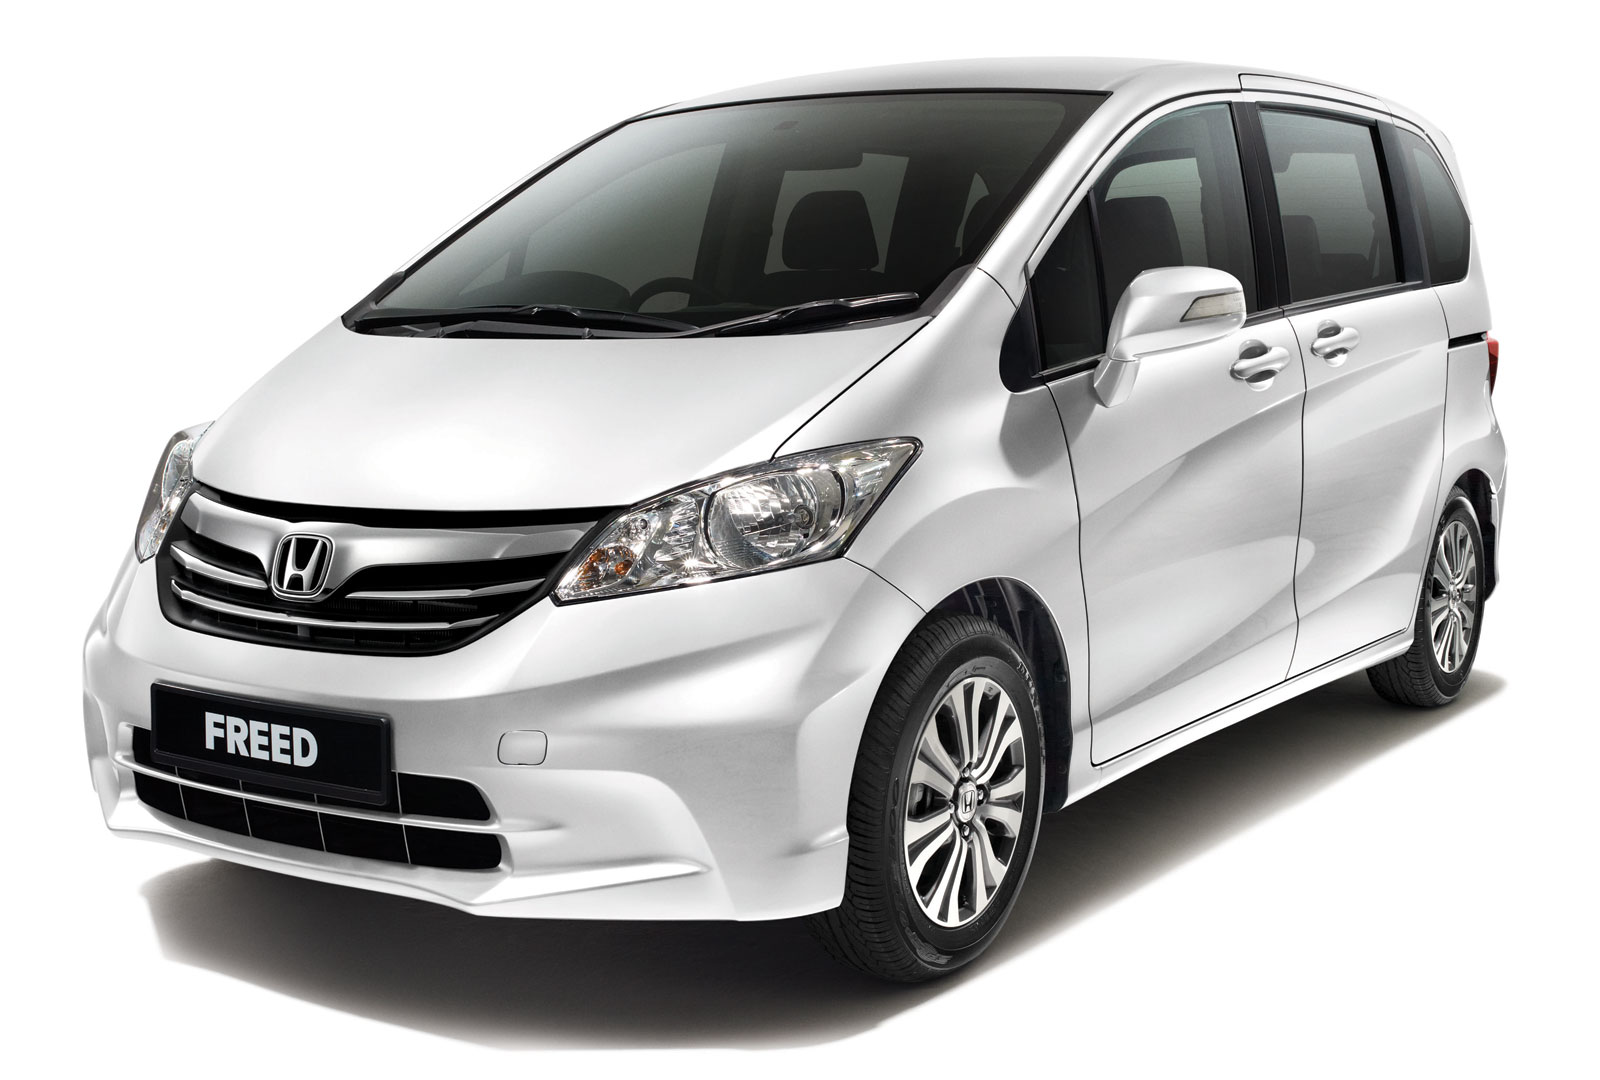 Hybrid Cars For Sale >> Honda Freed MPV facelifted - RM99,800 to RM113,500